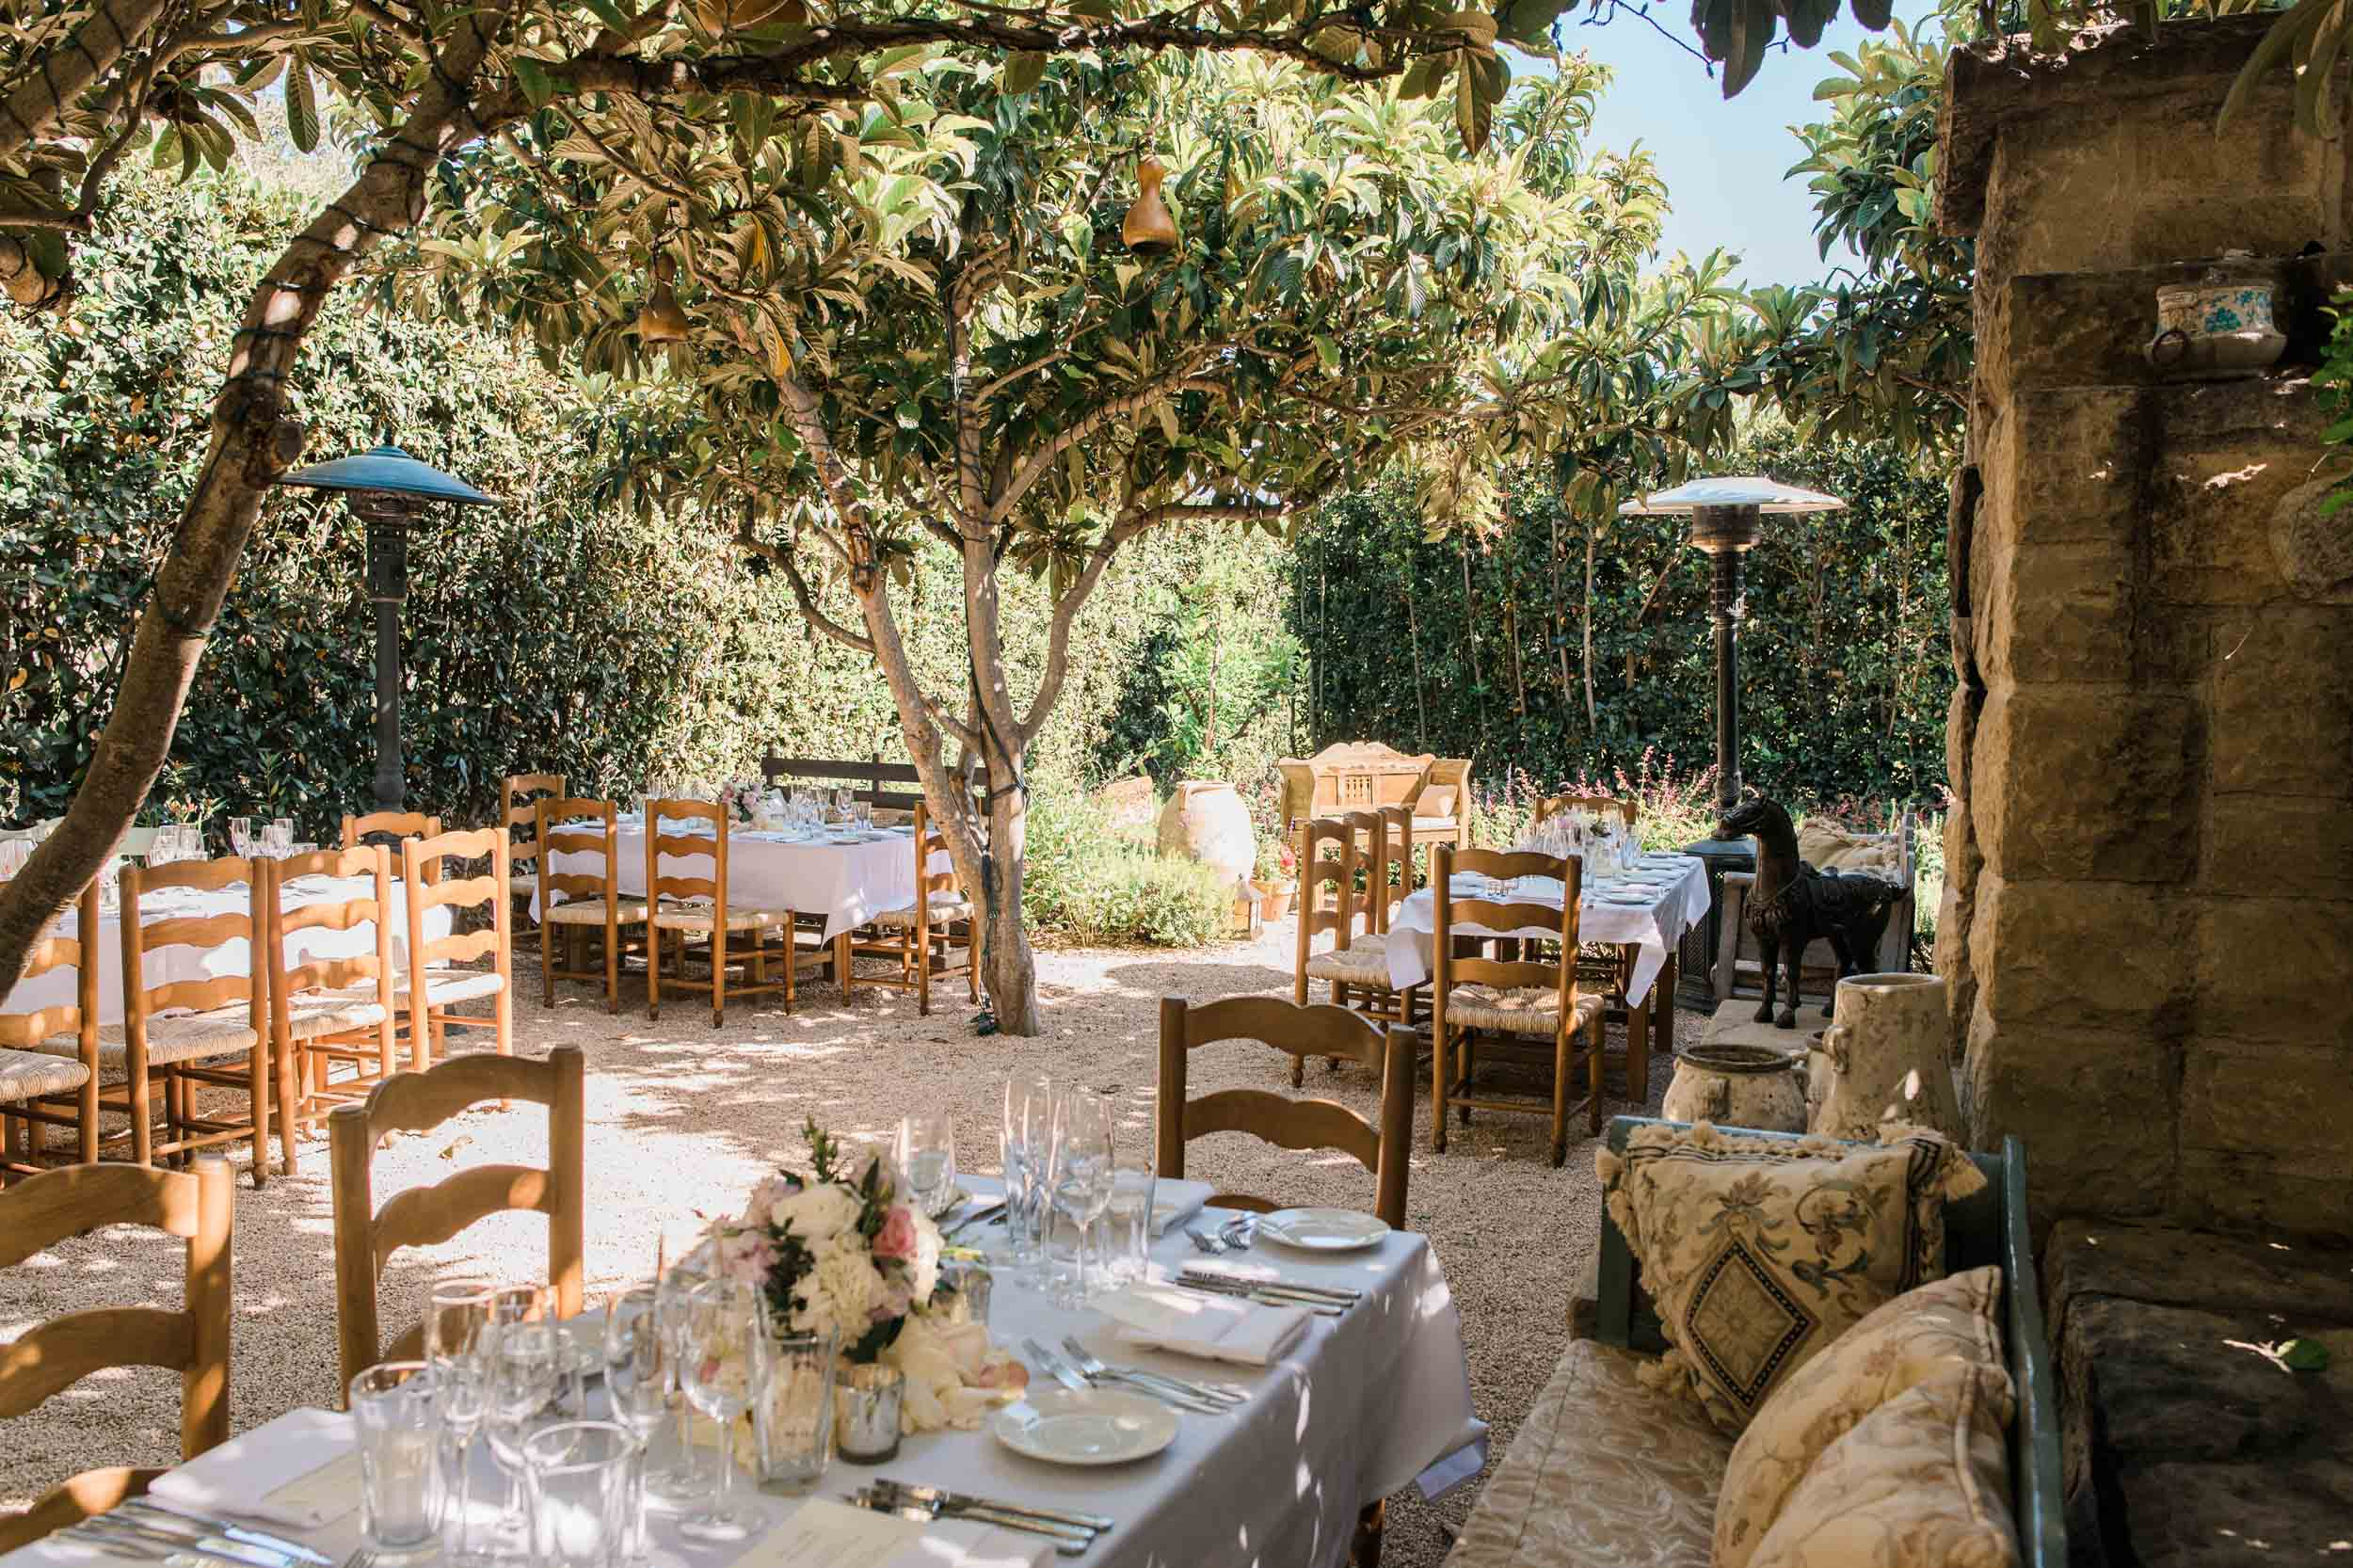 Wedding Reception Locations | Wedding Reception Venues Visit Santa Barbara